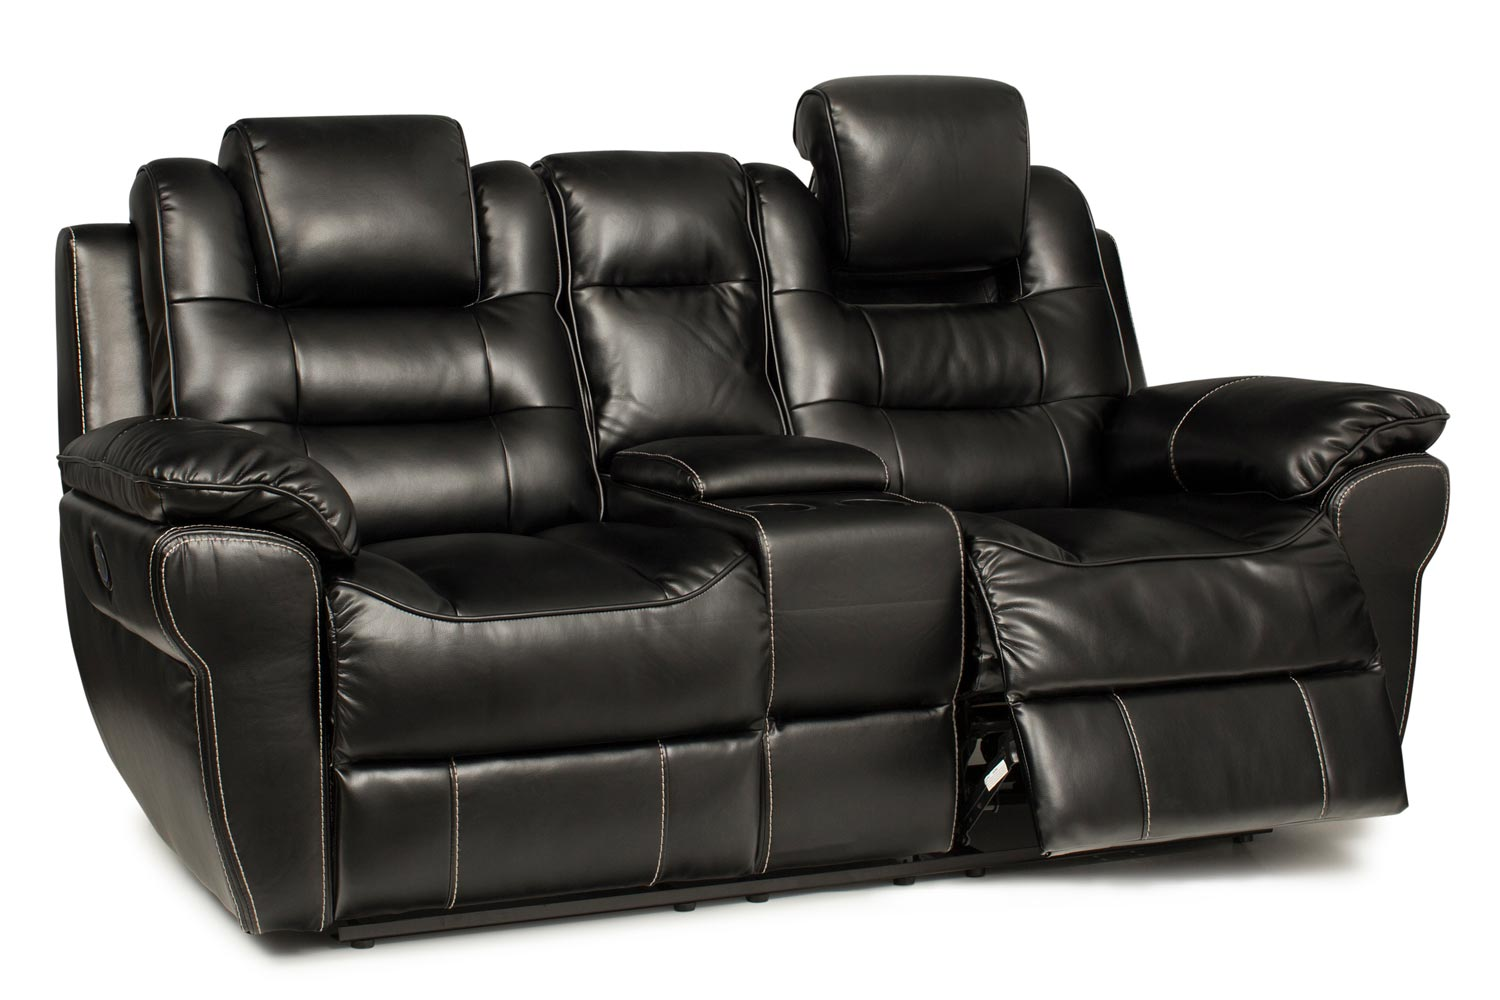 leather recliner chairs harvey norman office chair vastu baxter 2 seater electric with console black